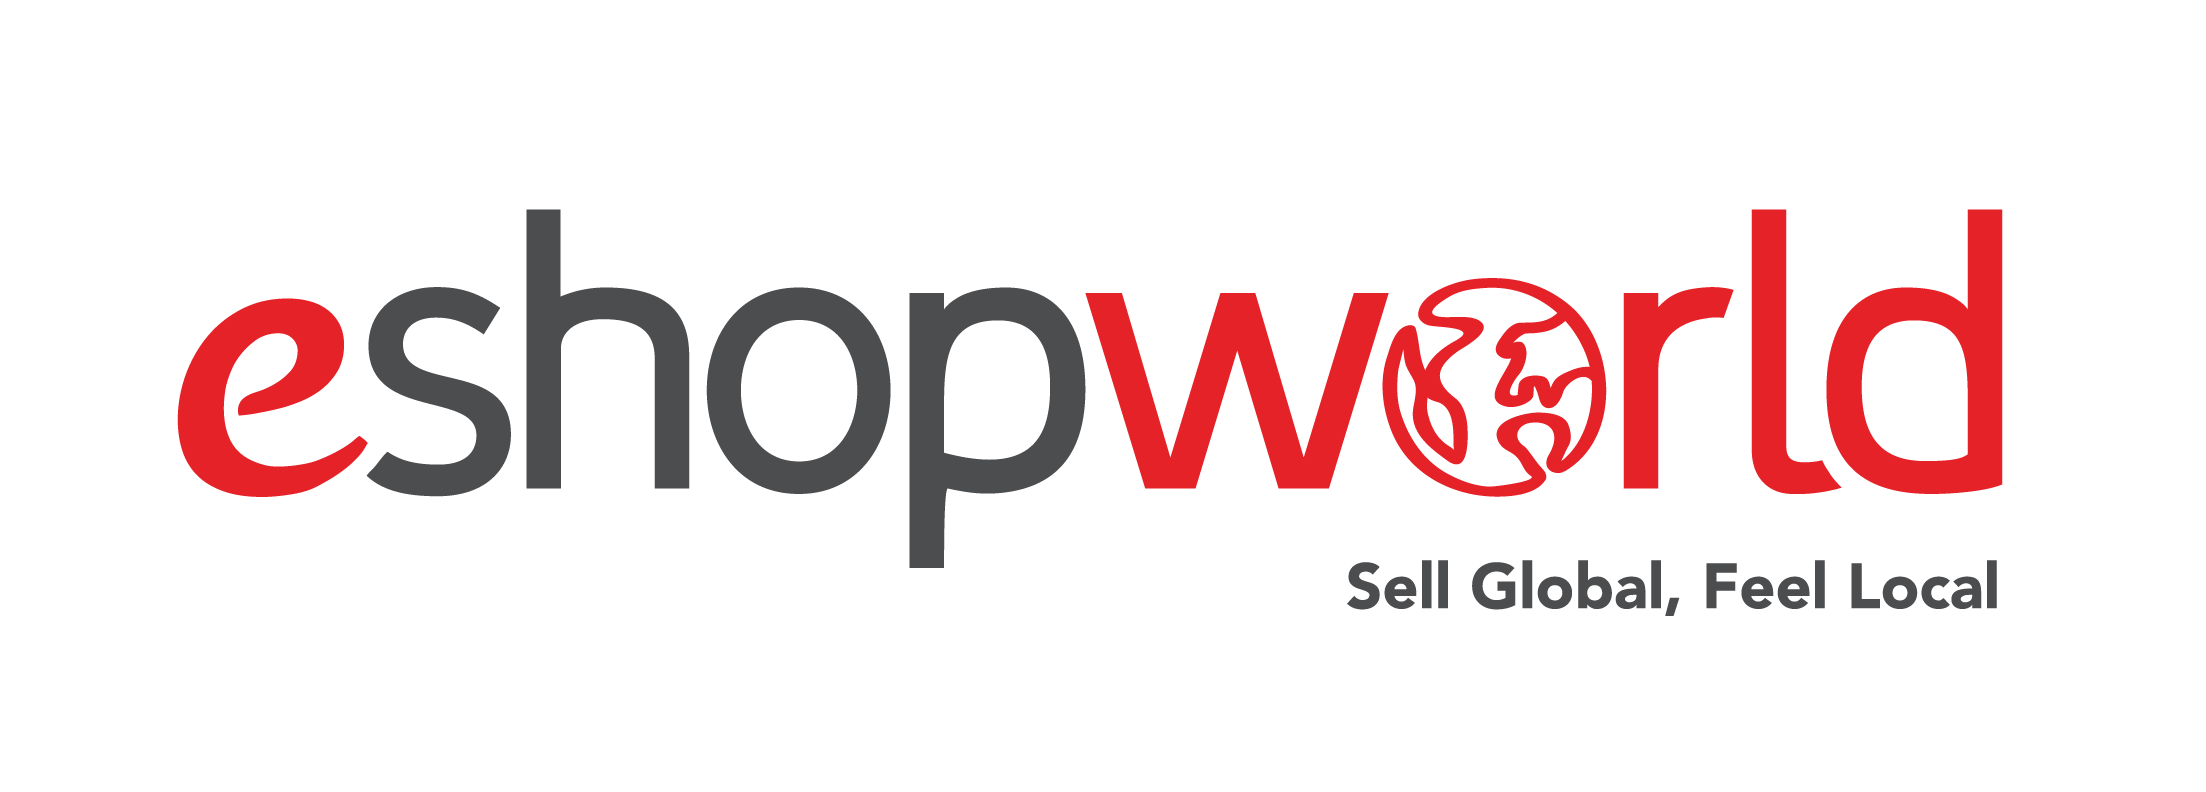 eShopWorld-Sell-Global-Feel-Local-logo-01